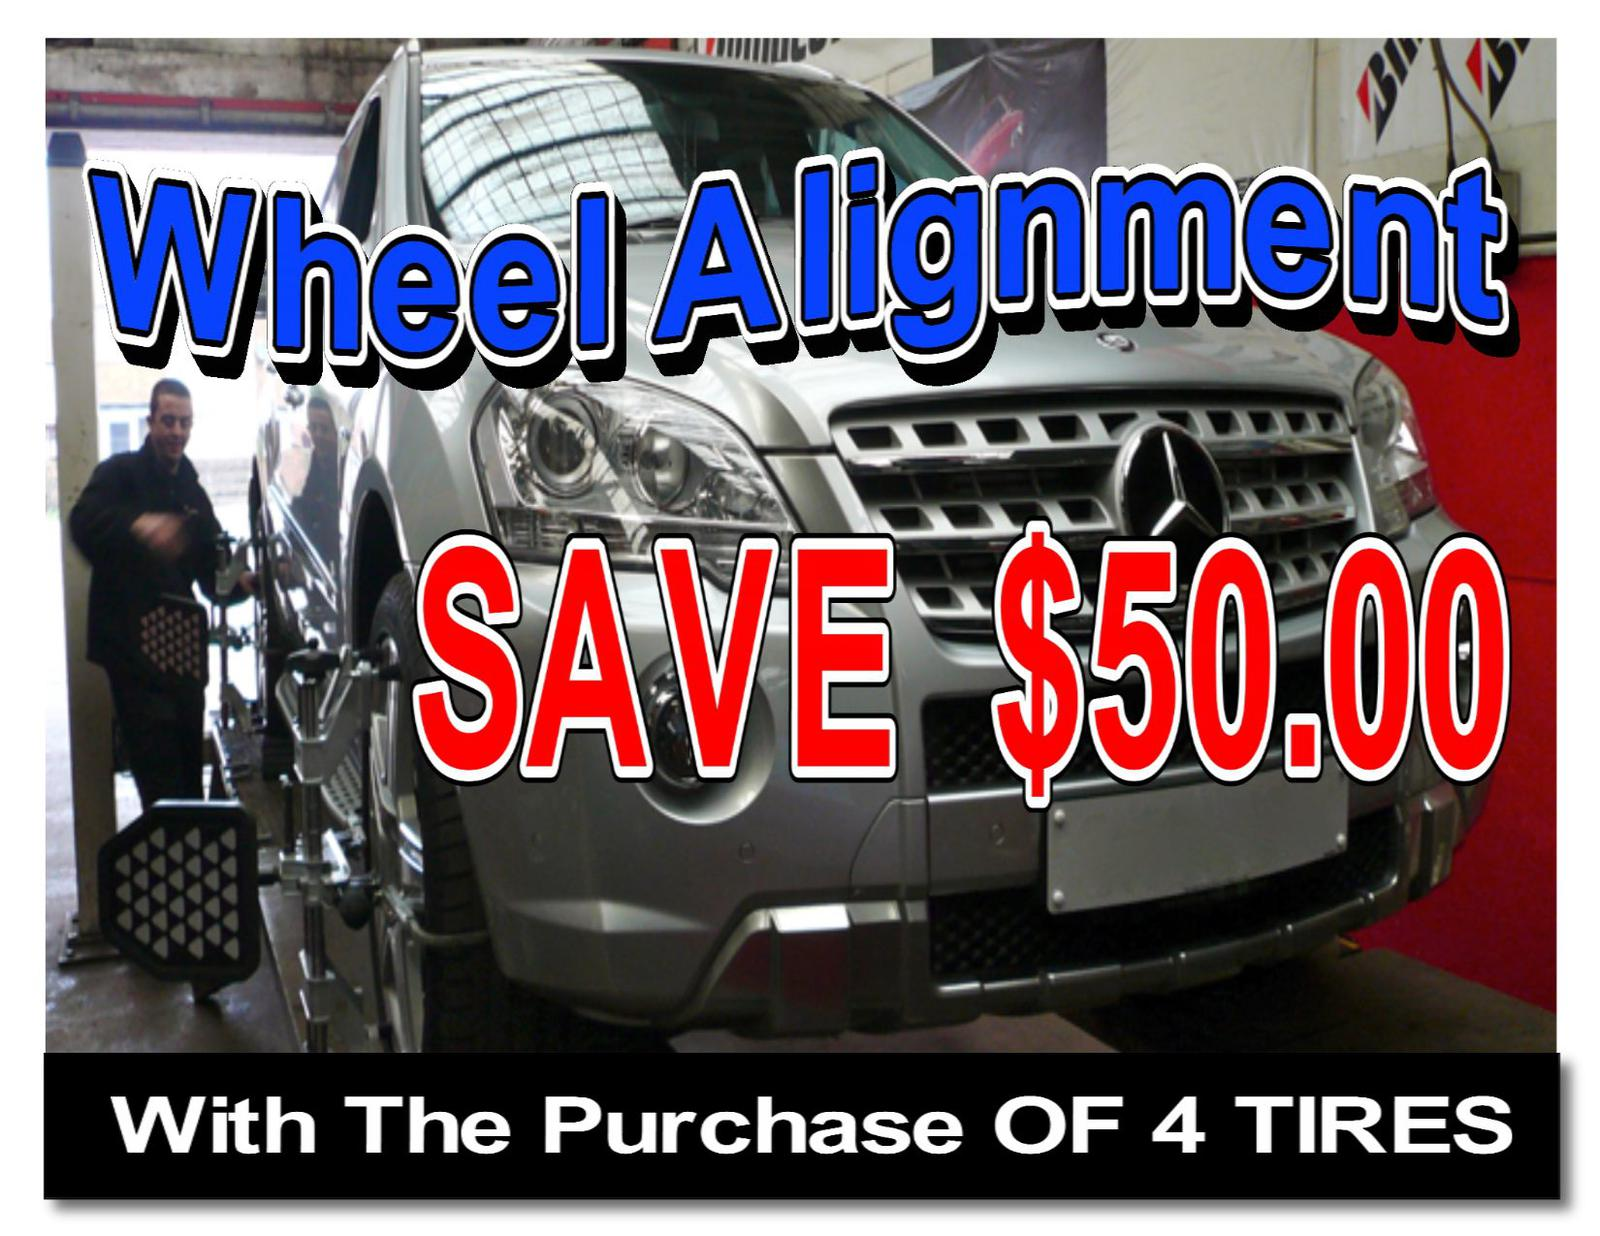 NEW Wheel Alignment